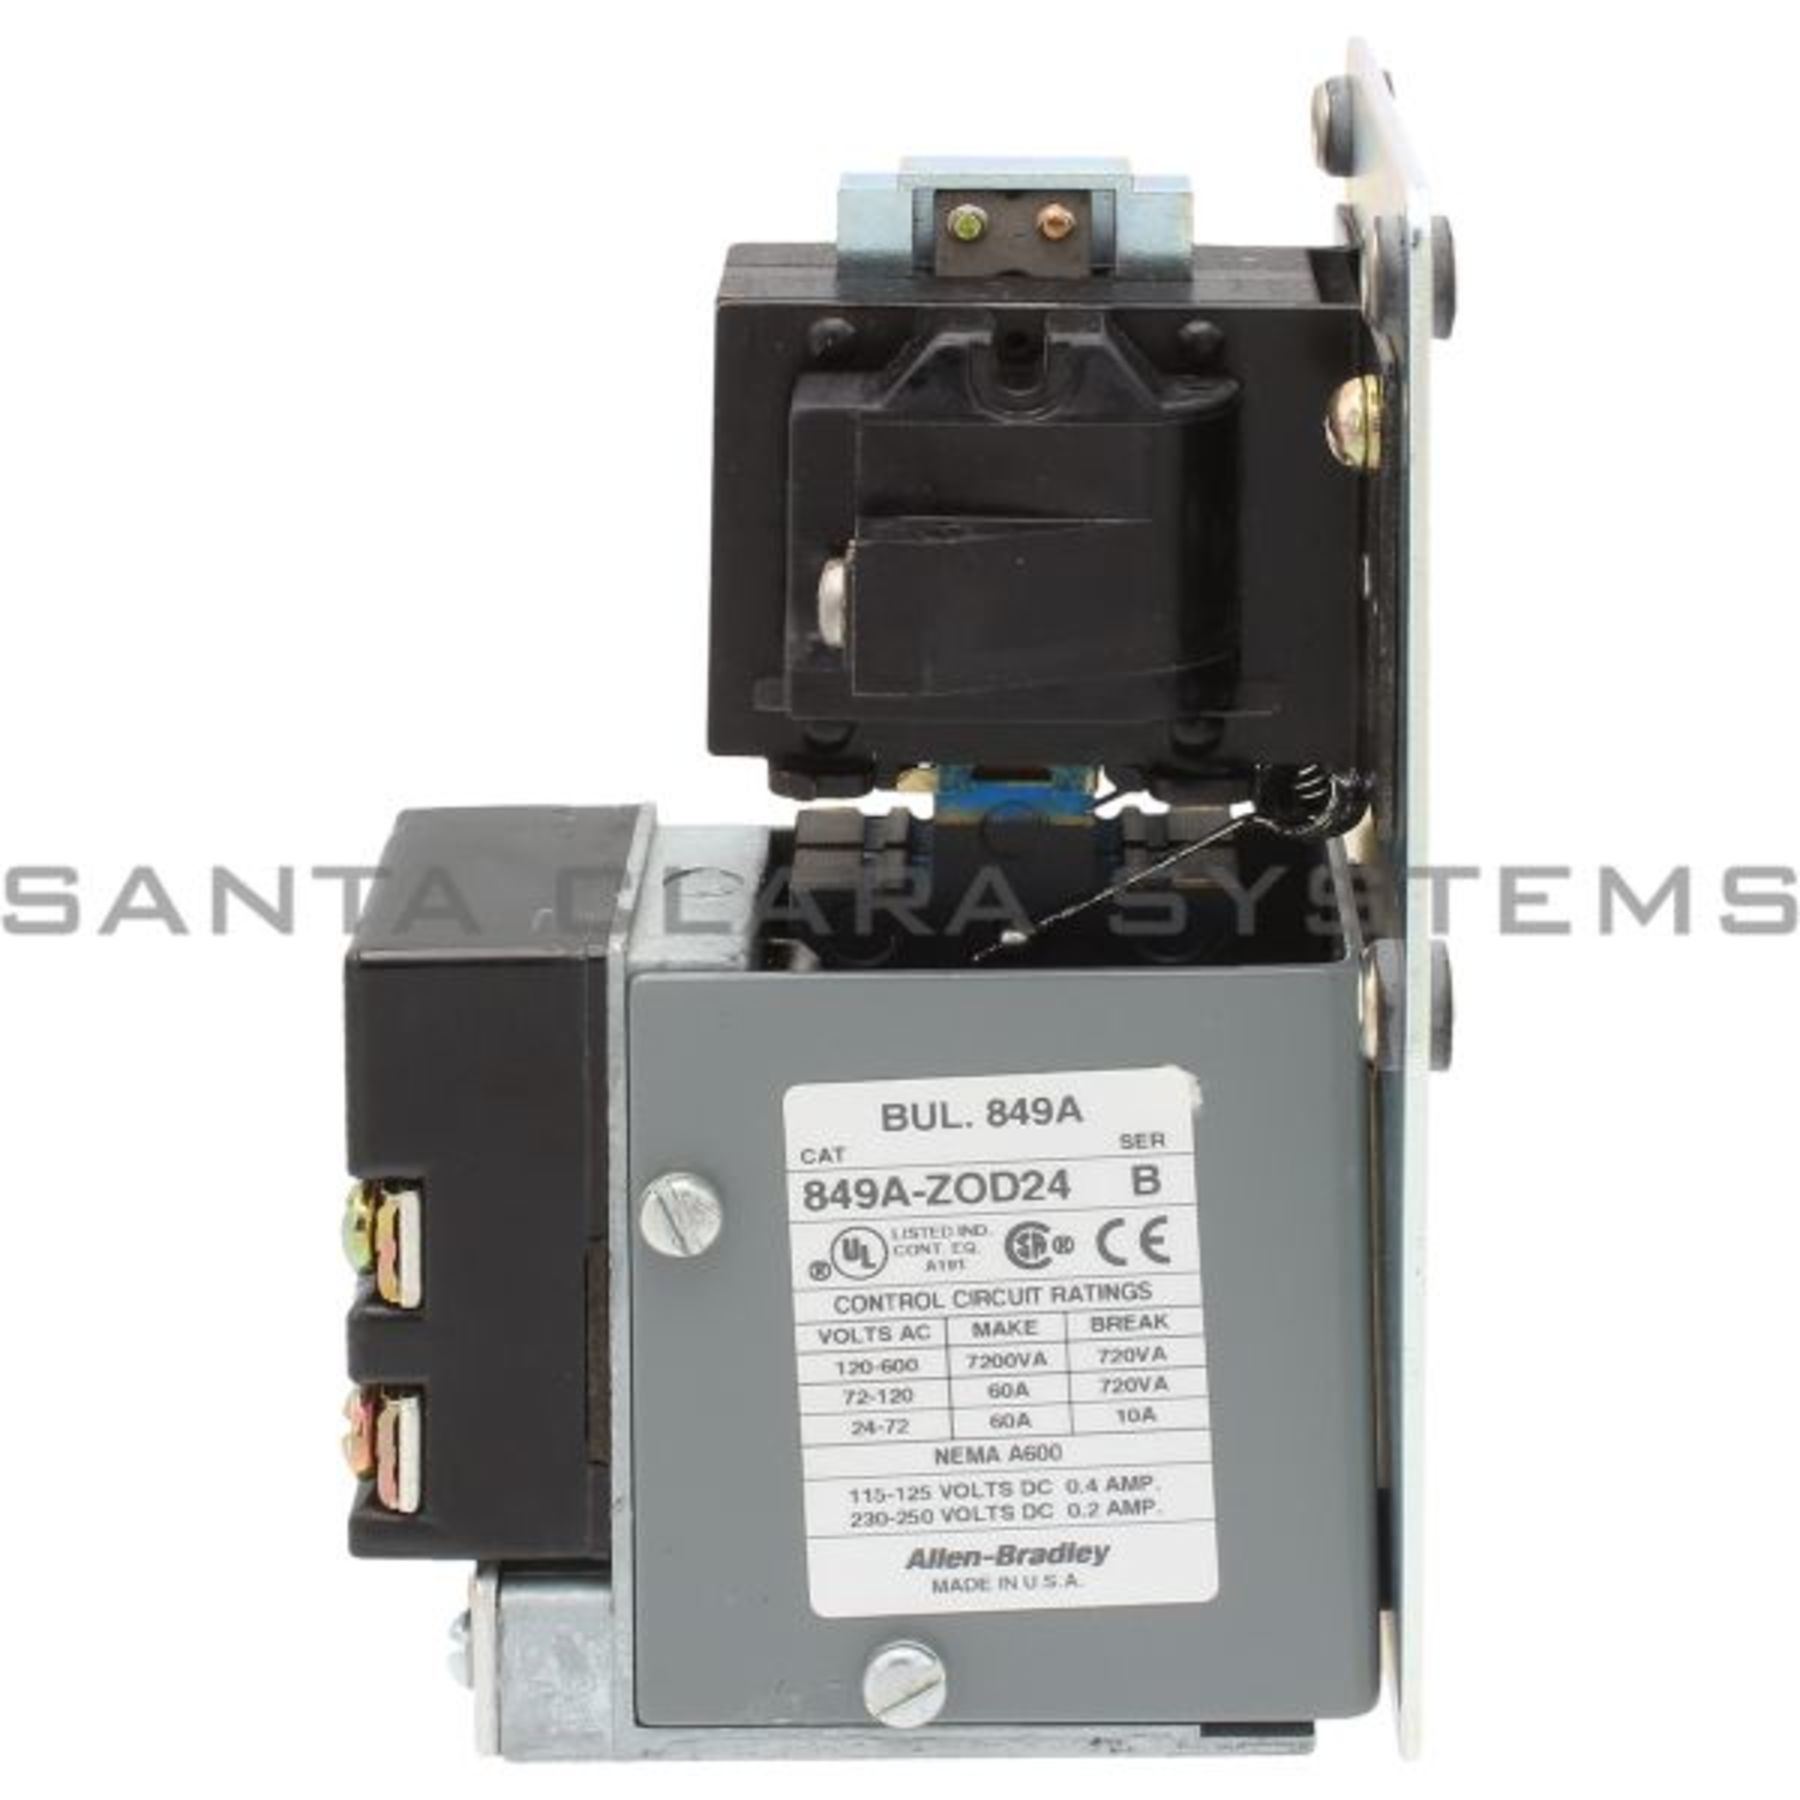 849a Zod24 Allen Bradley In Stock And Ready To Ship Santa Clara Relay Timing Circuit Pneumatic Product Image